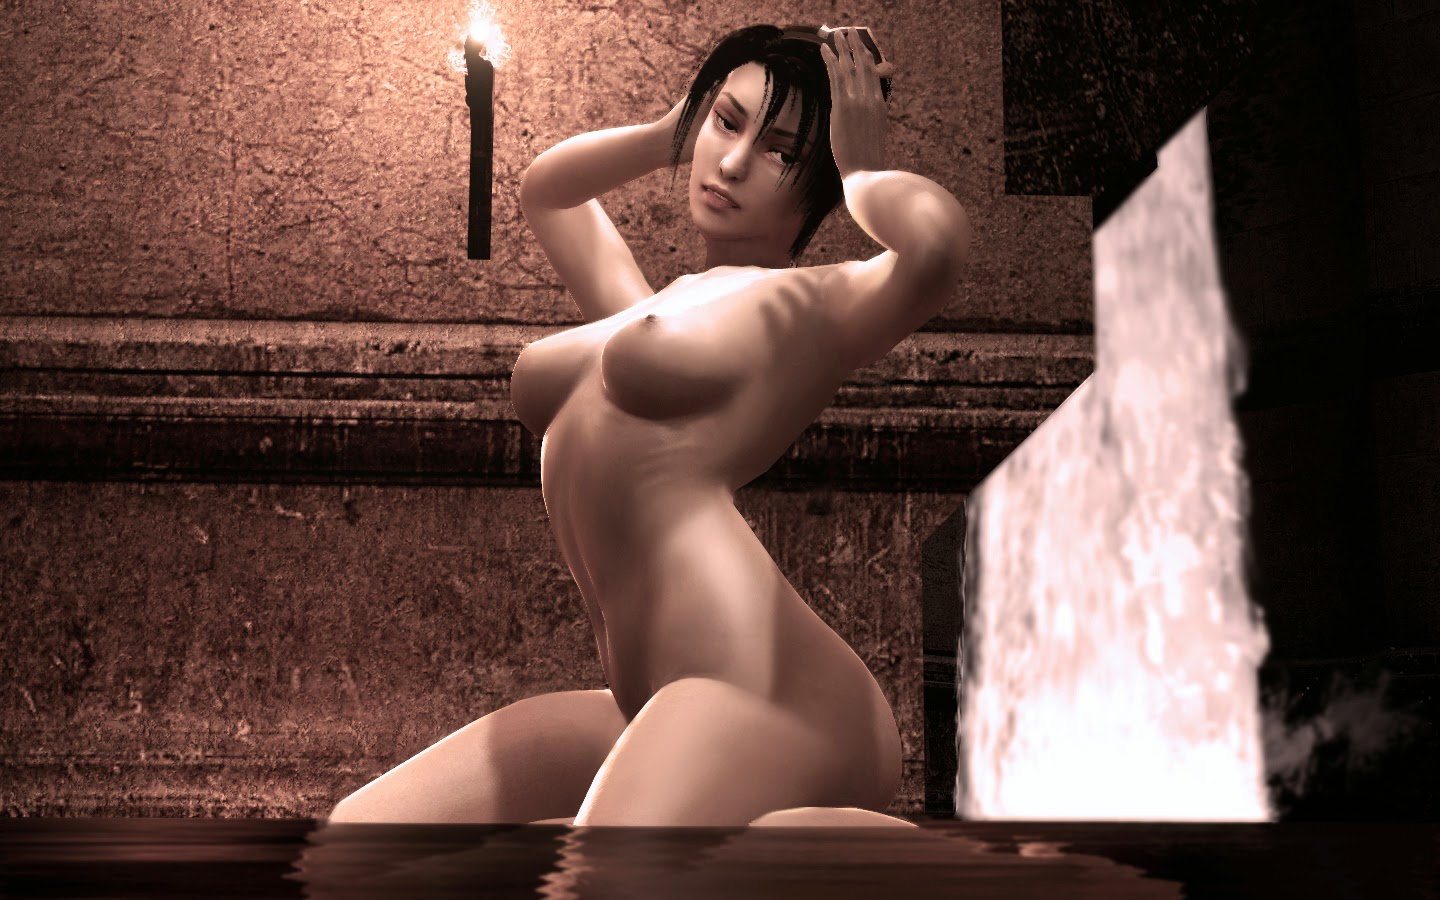 Soulcalibur naked pictures erotic scene